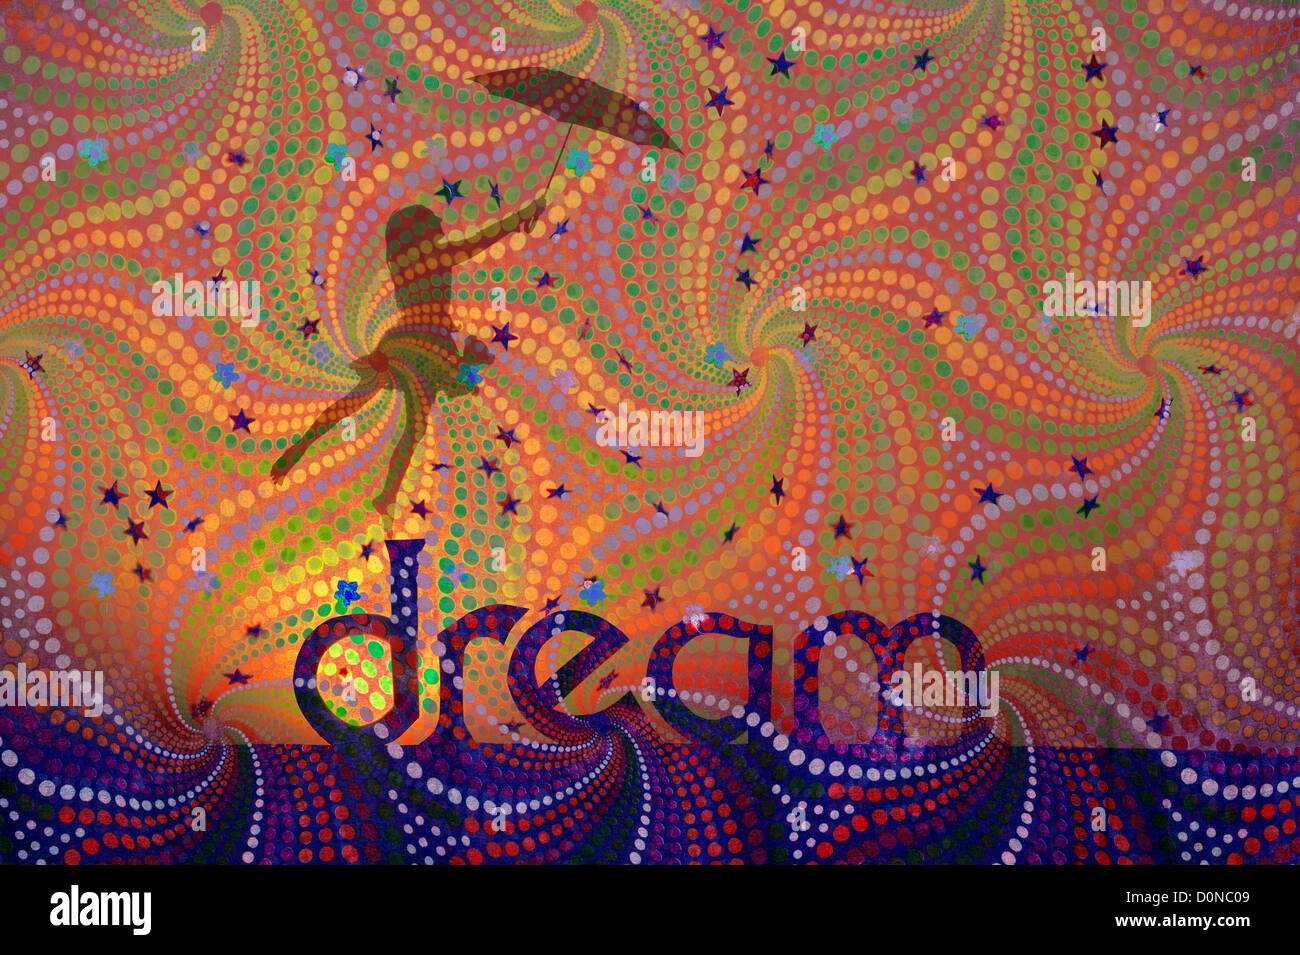 Silhouette girl with teddy bear and umbrella on DREAM word with falling stars on spiral pattern. Childhood dreams - Stock Image